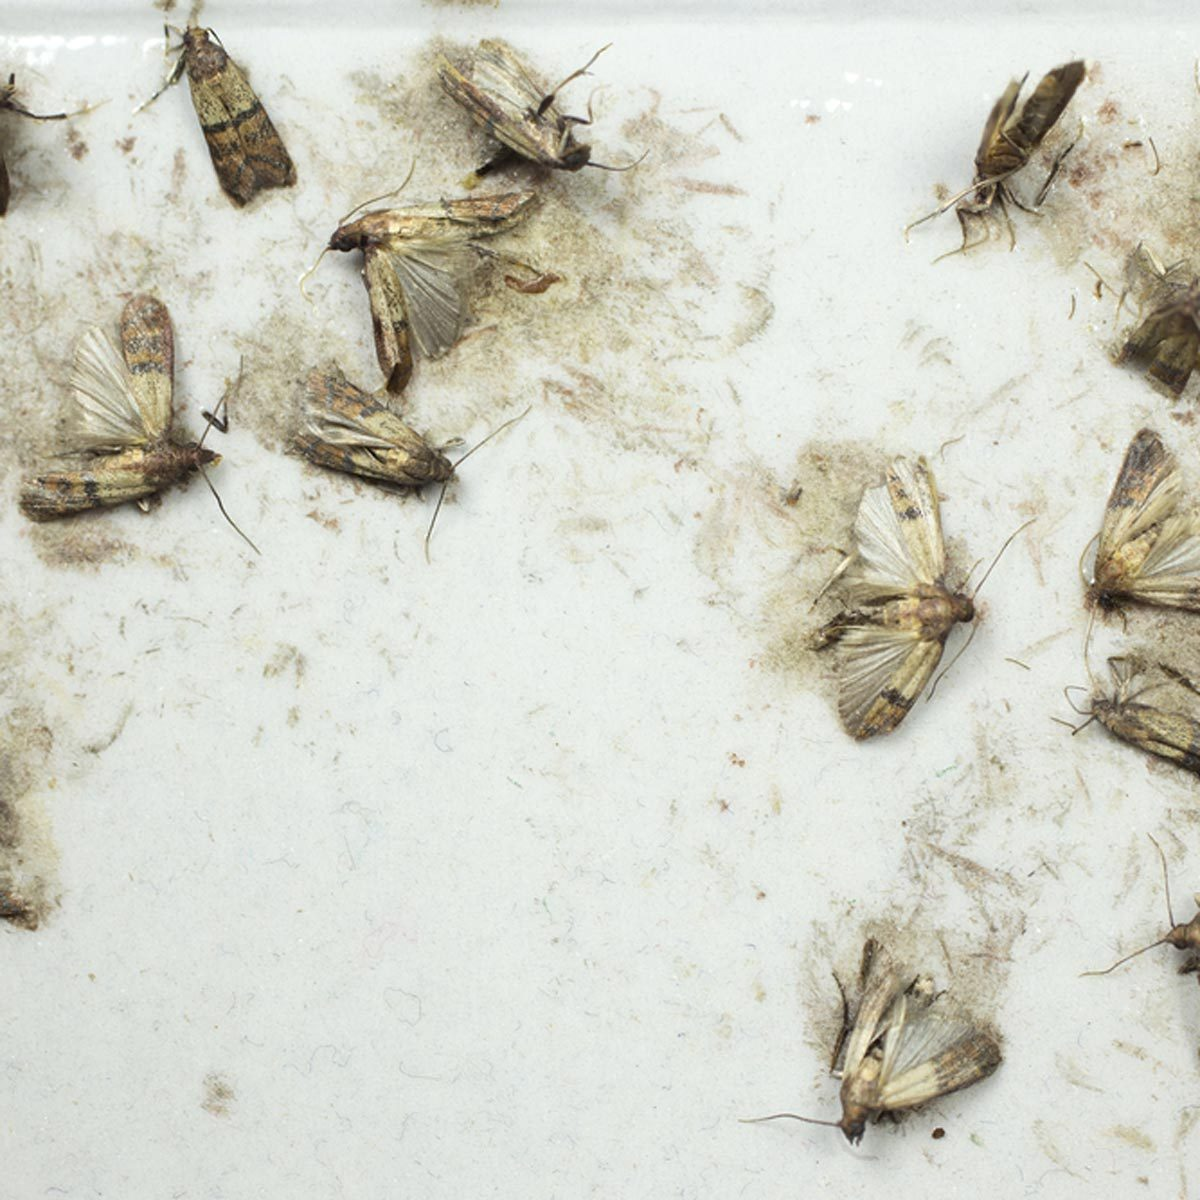 The 16 Most Disgusting House Bugs and How To Get Rid of Them